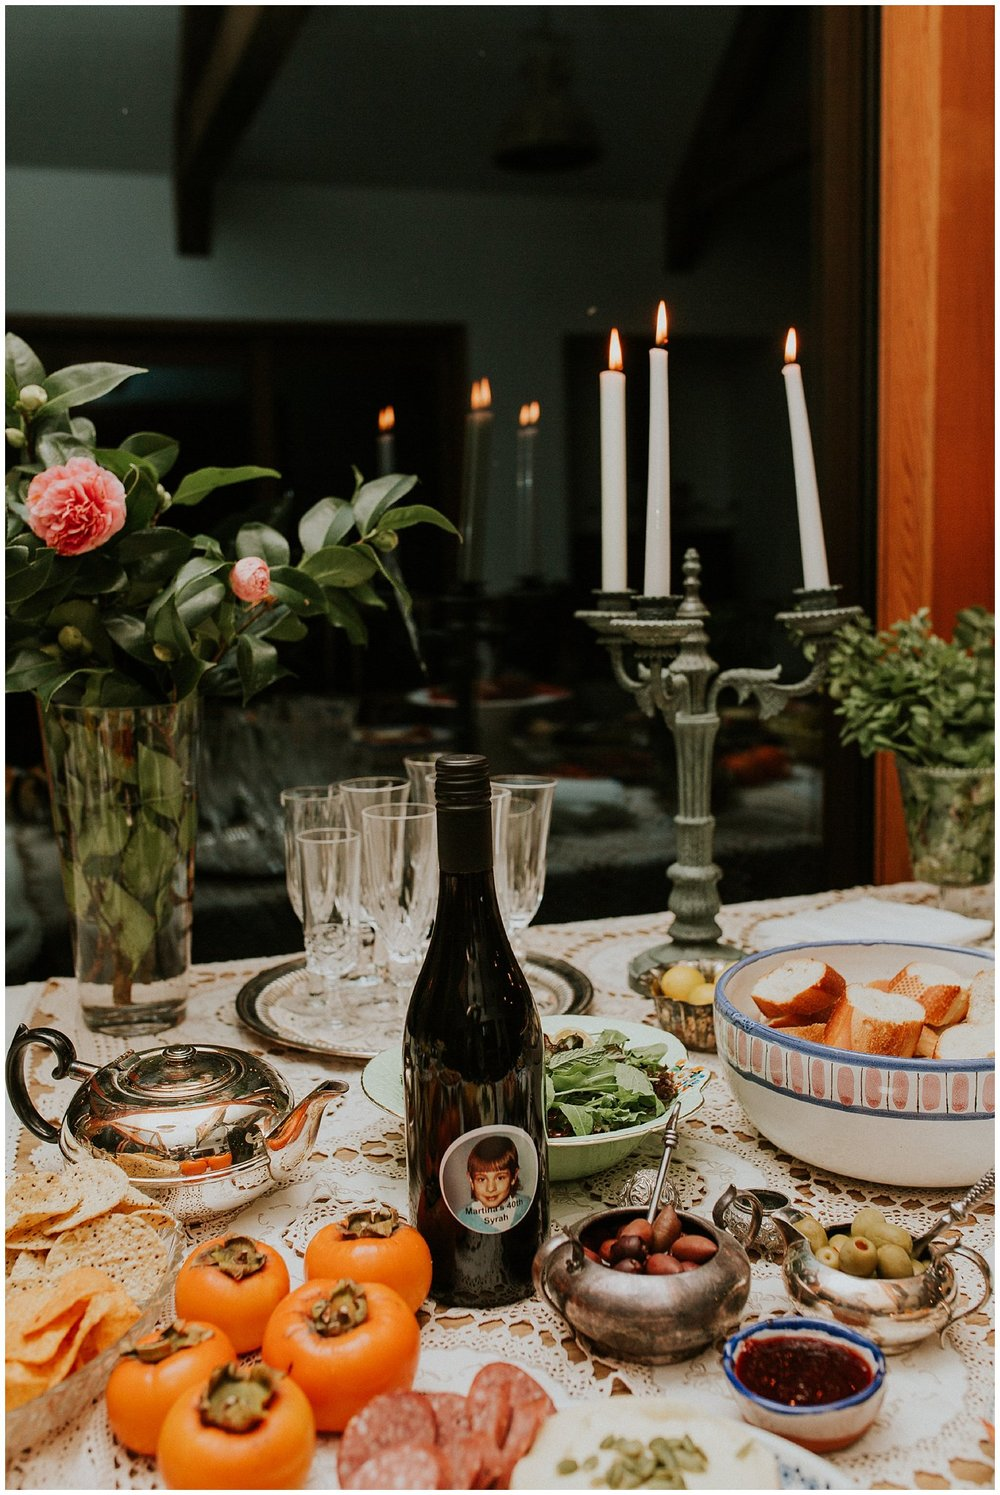 Grazing Table 1940's Party | Carmen Peter Photography Blenheim